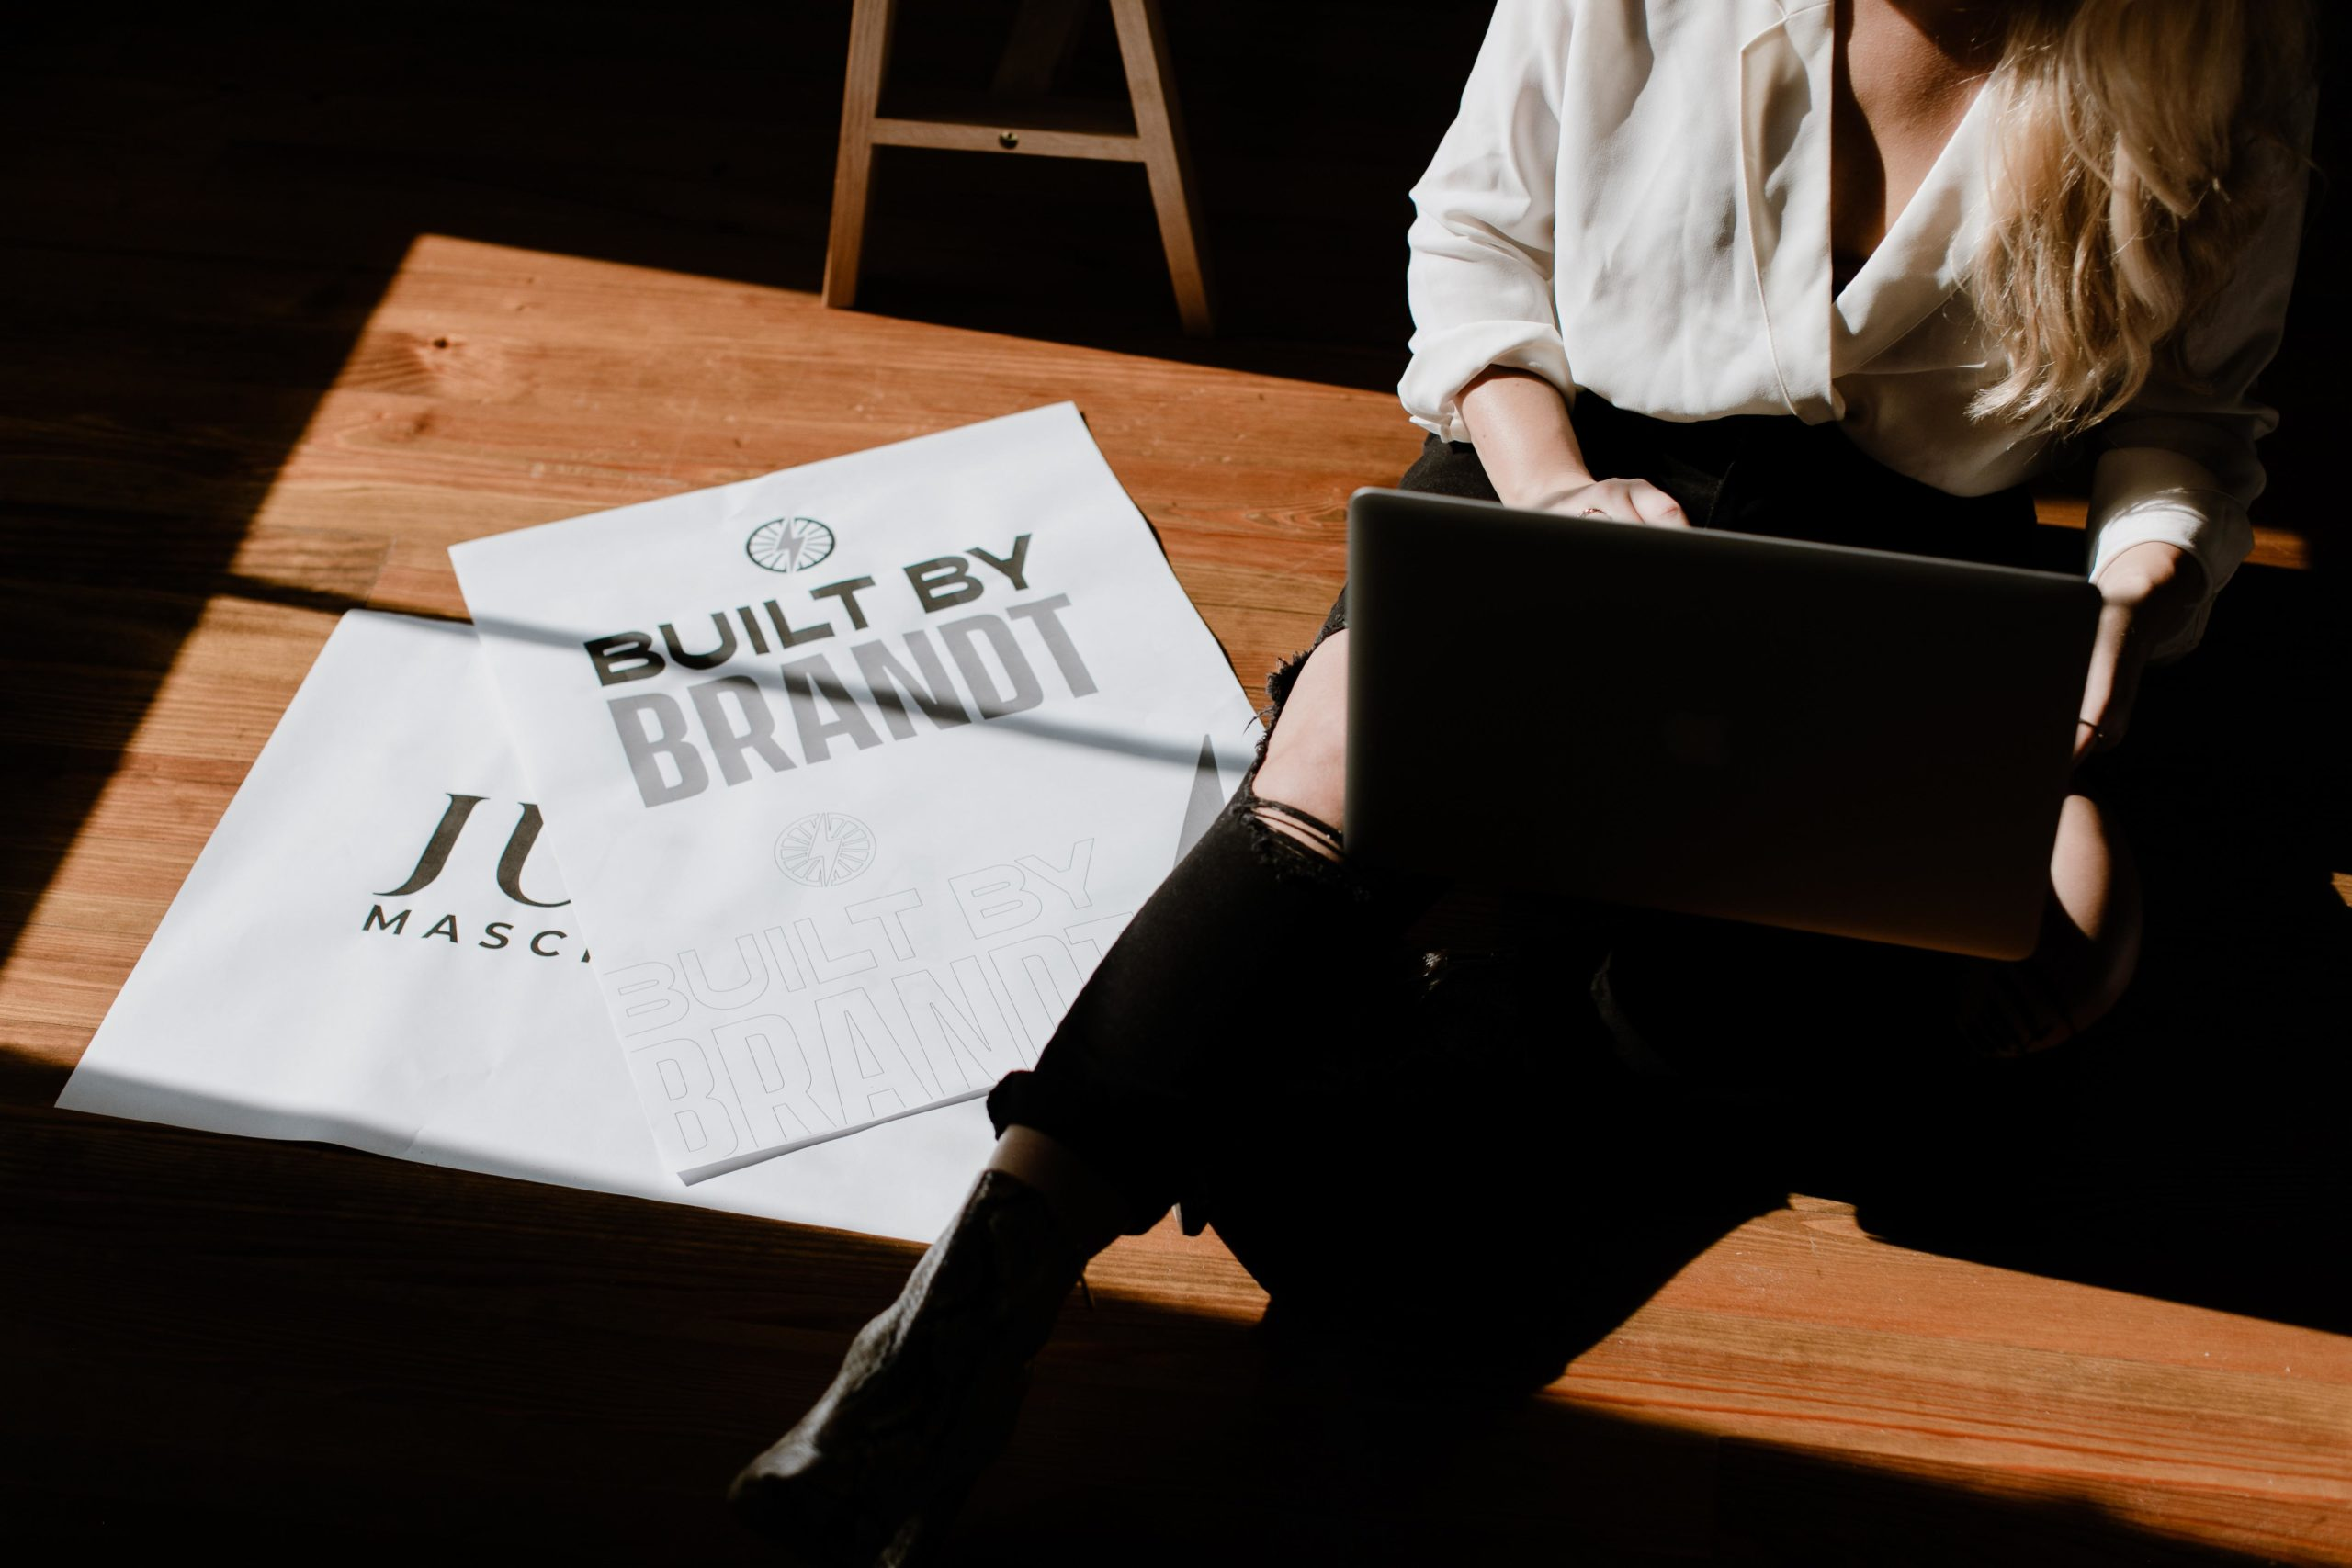 A woman is sitting on the floor with a laptop in her lap and papers scattered on the floor.